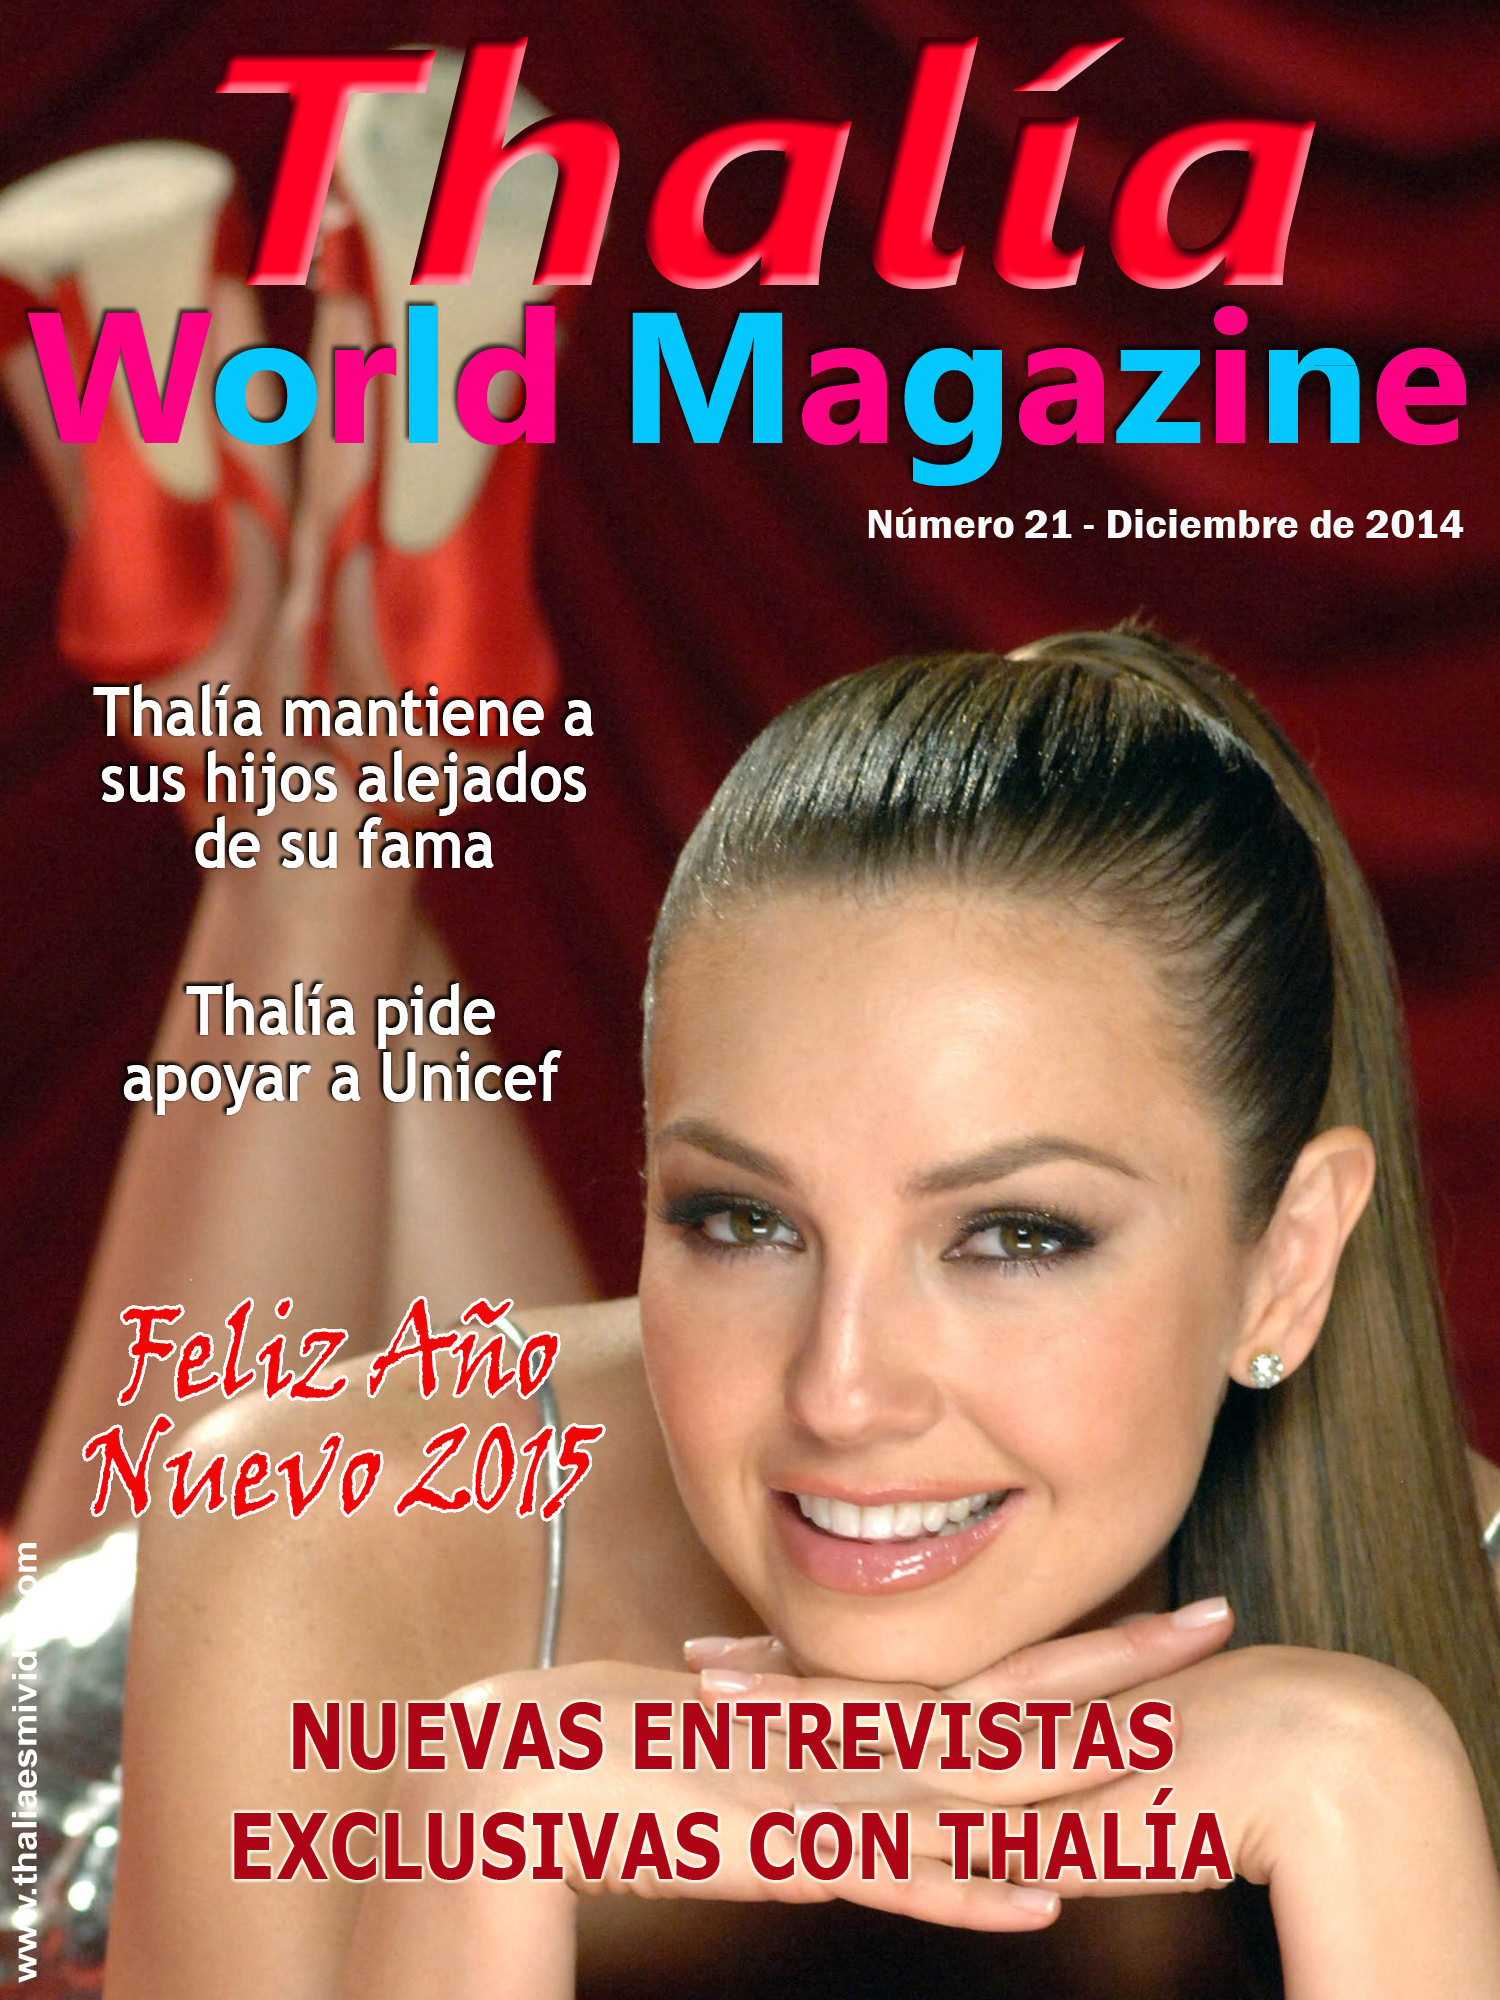 Thalia World Magazine 21